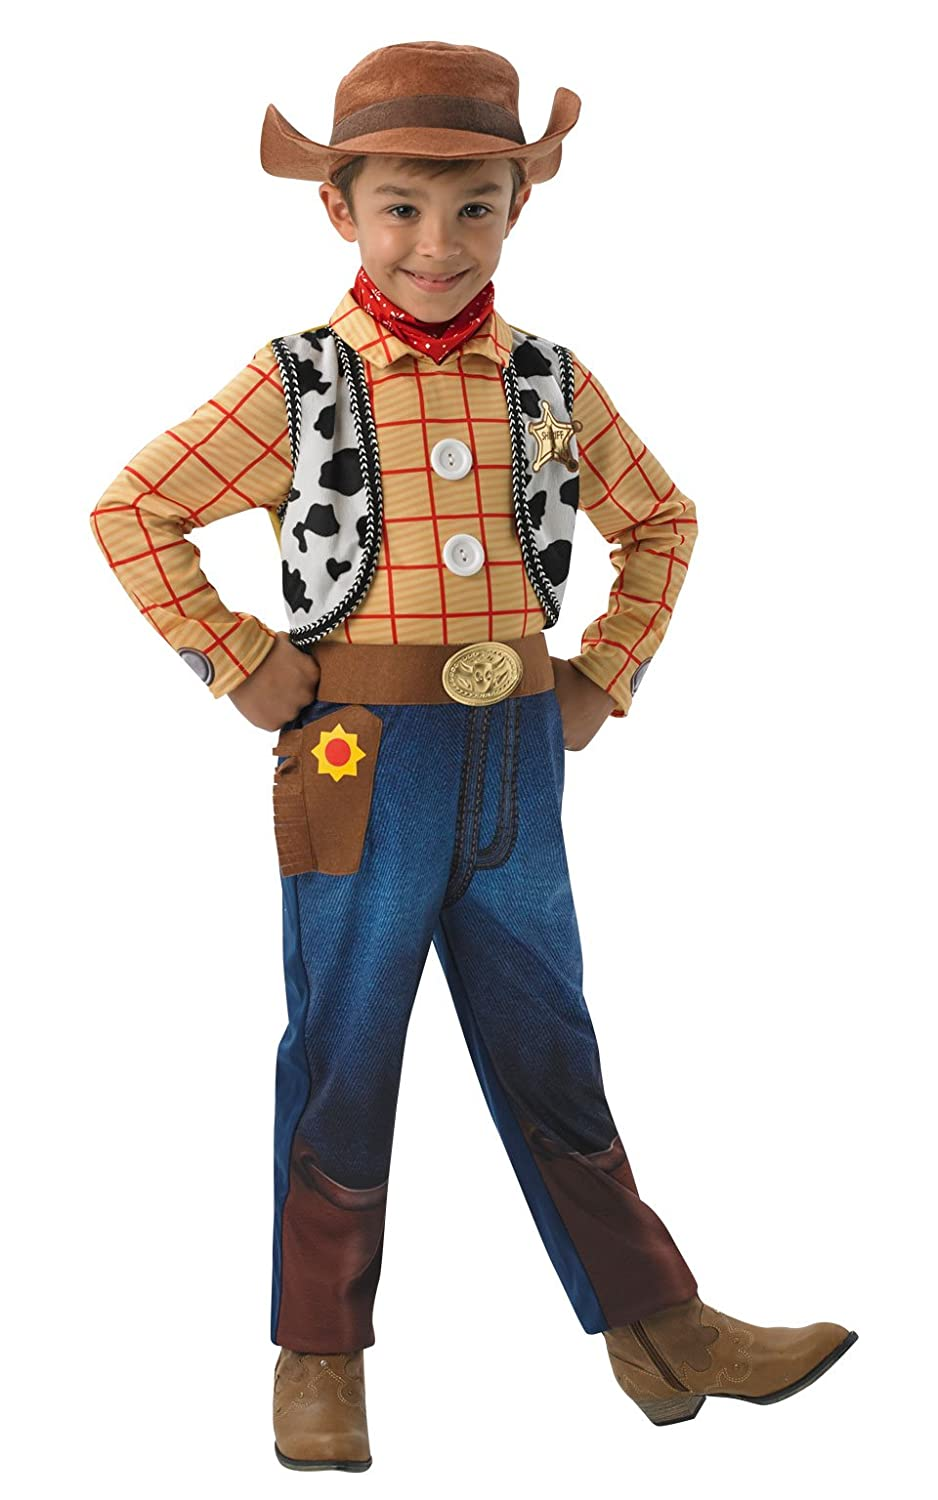 Rubieu0027s Official Disney Toy Story Woody Deluxe Children Costume - Small Amazon.co.uk Toys u0026 Games  sc 1 st  Amazon UK & Rubieu0027s Official Disney Toy Story Woody Deluxe Children Costume ...